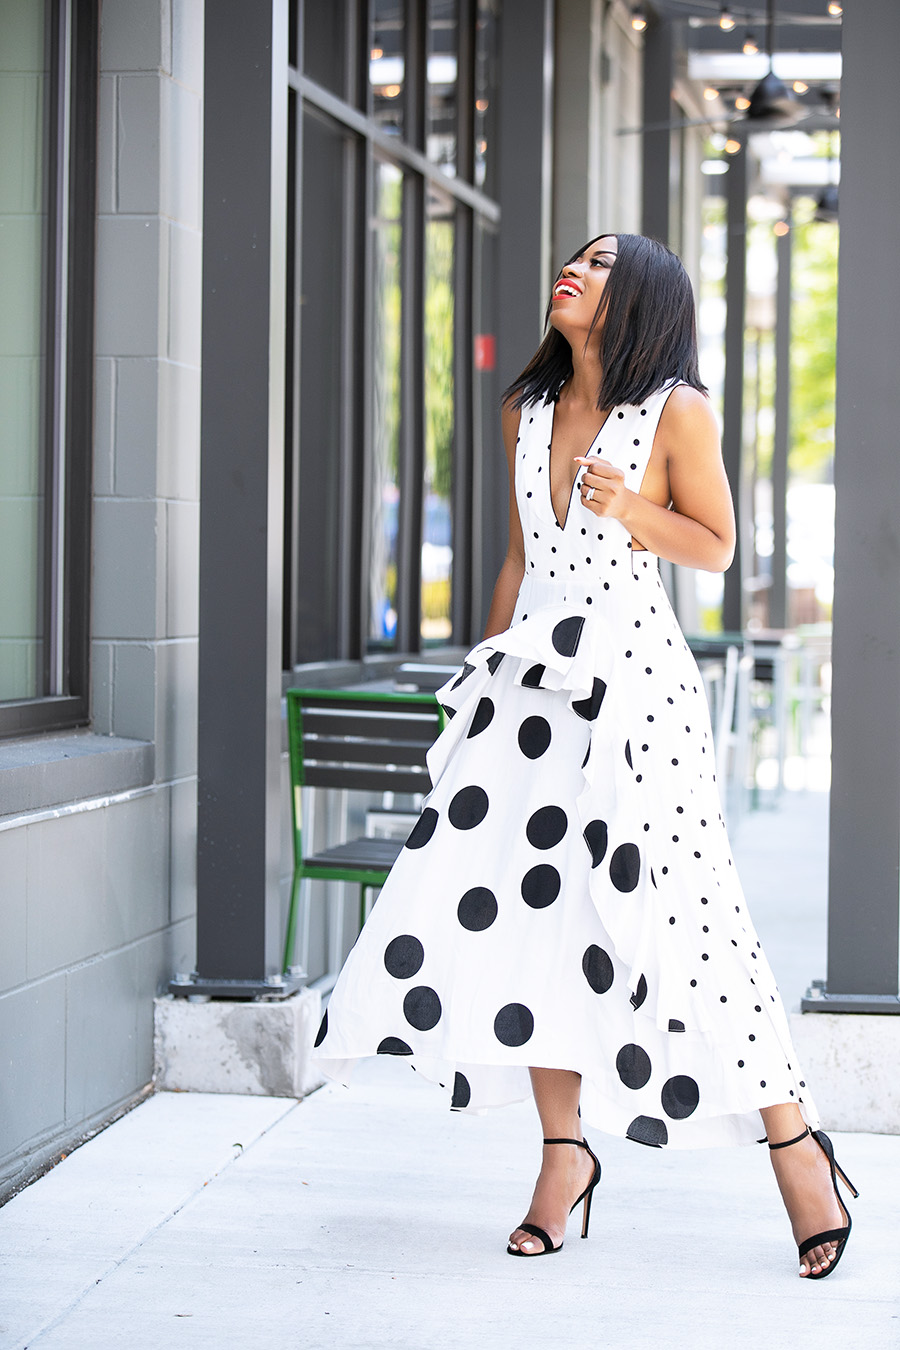 topshop mix polka dot dress, www.jadore-fashion.com